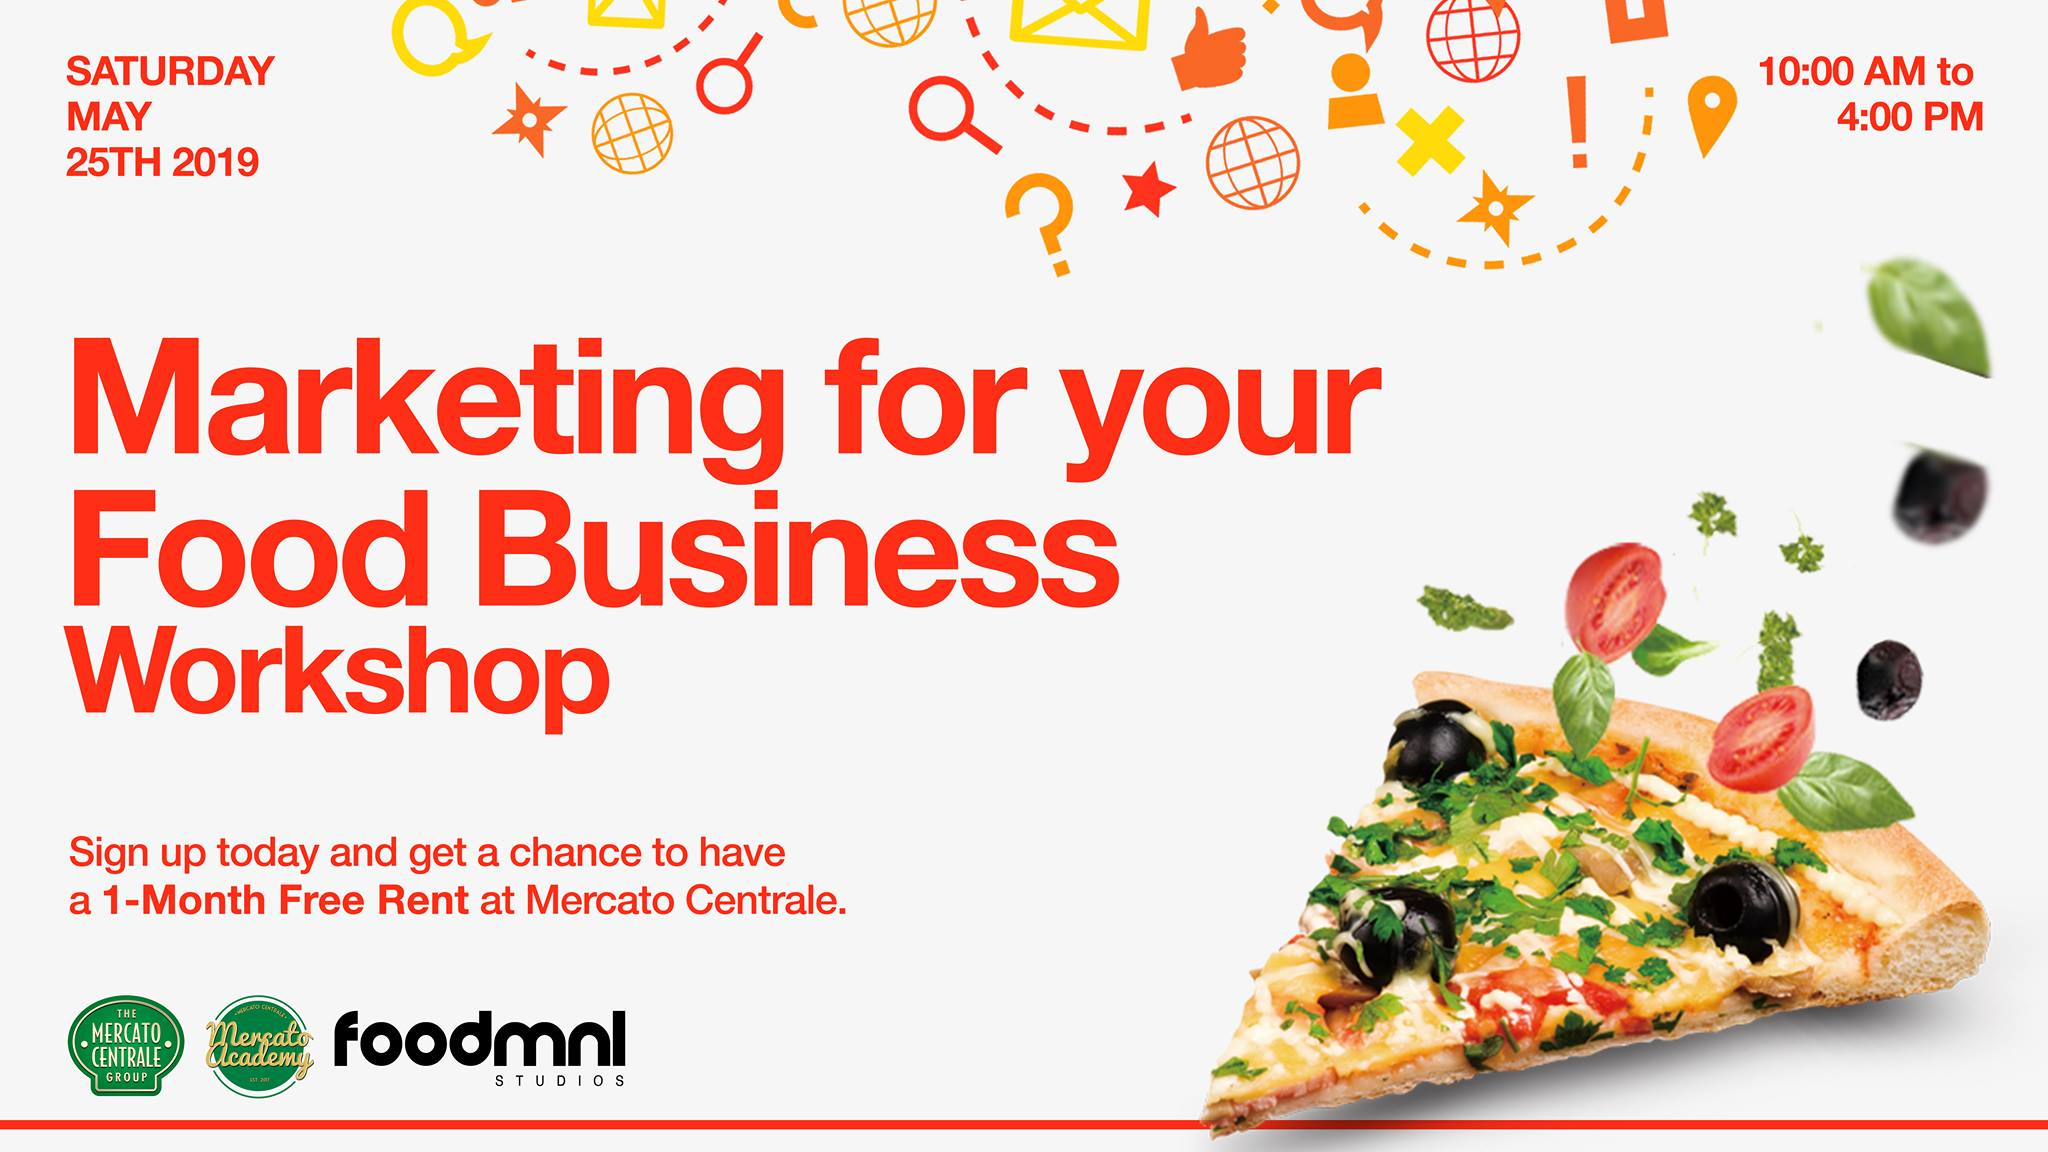 MARKETING FOR YOUR FOOD BUSINESS WORKSHOP